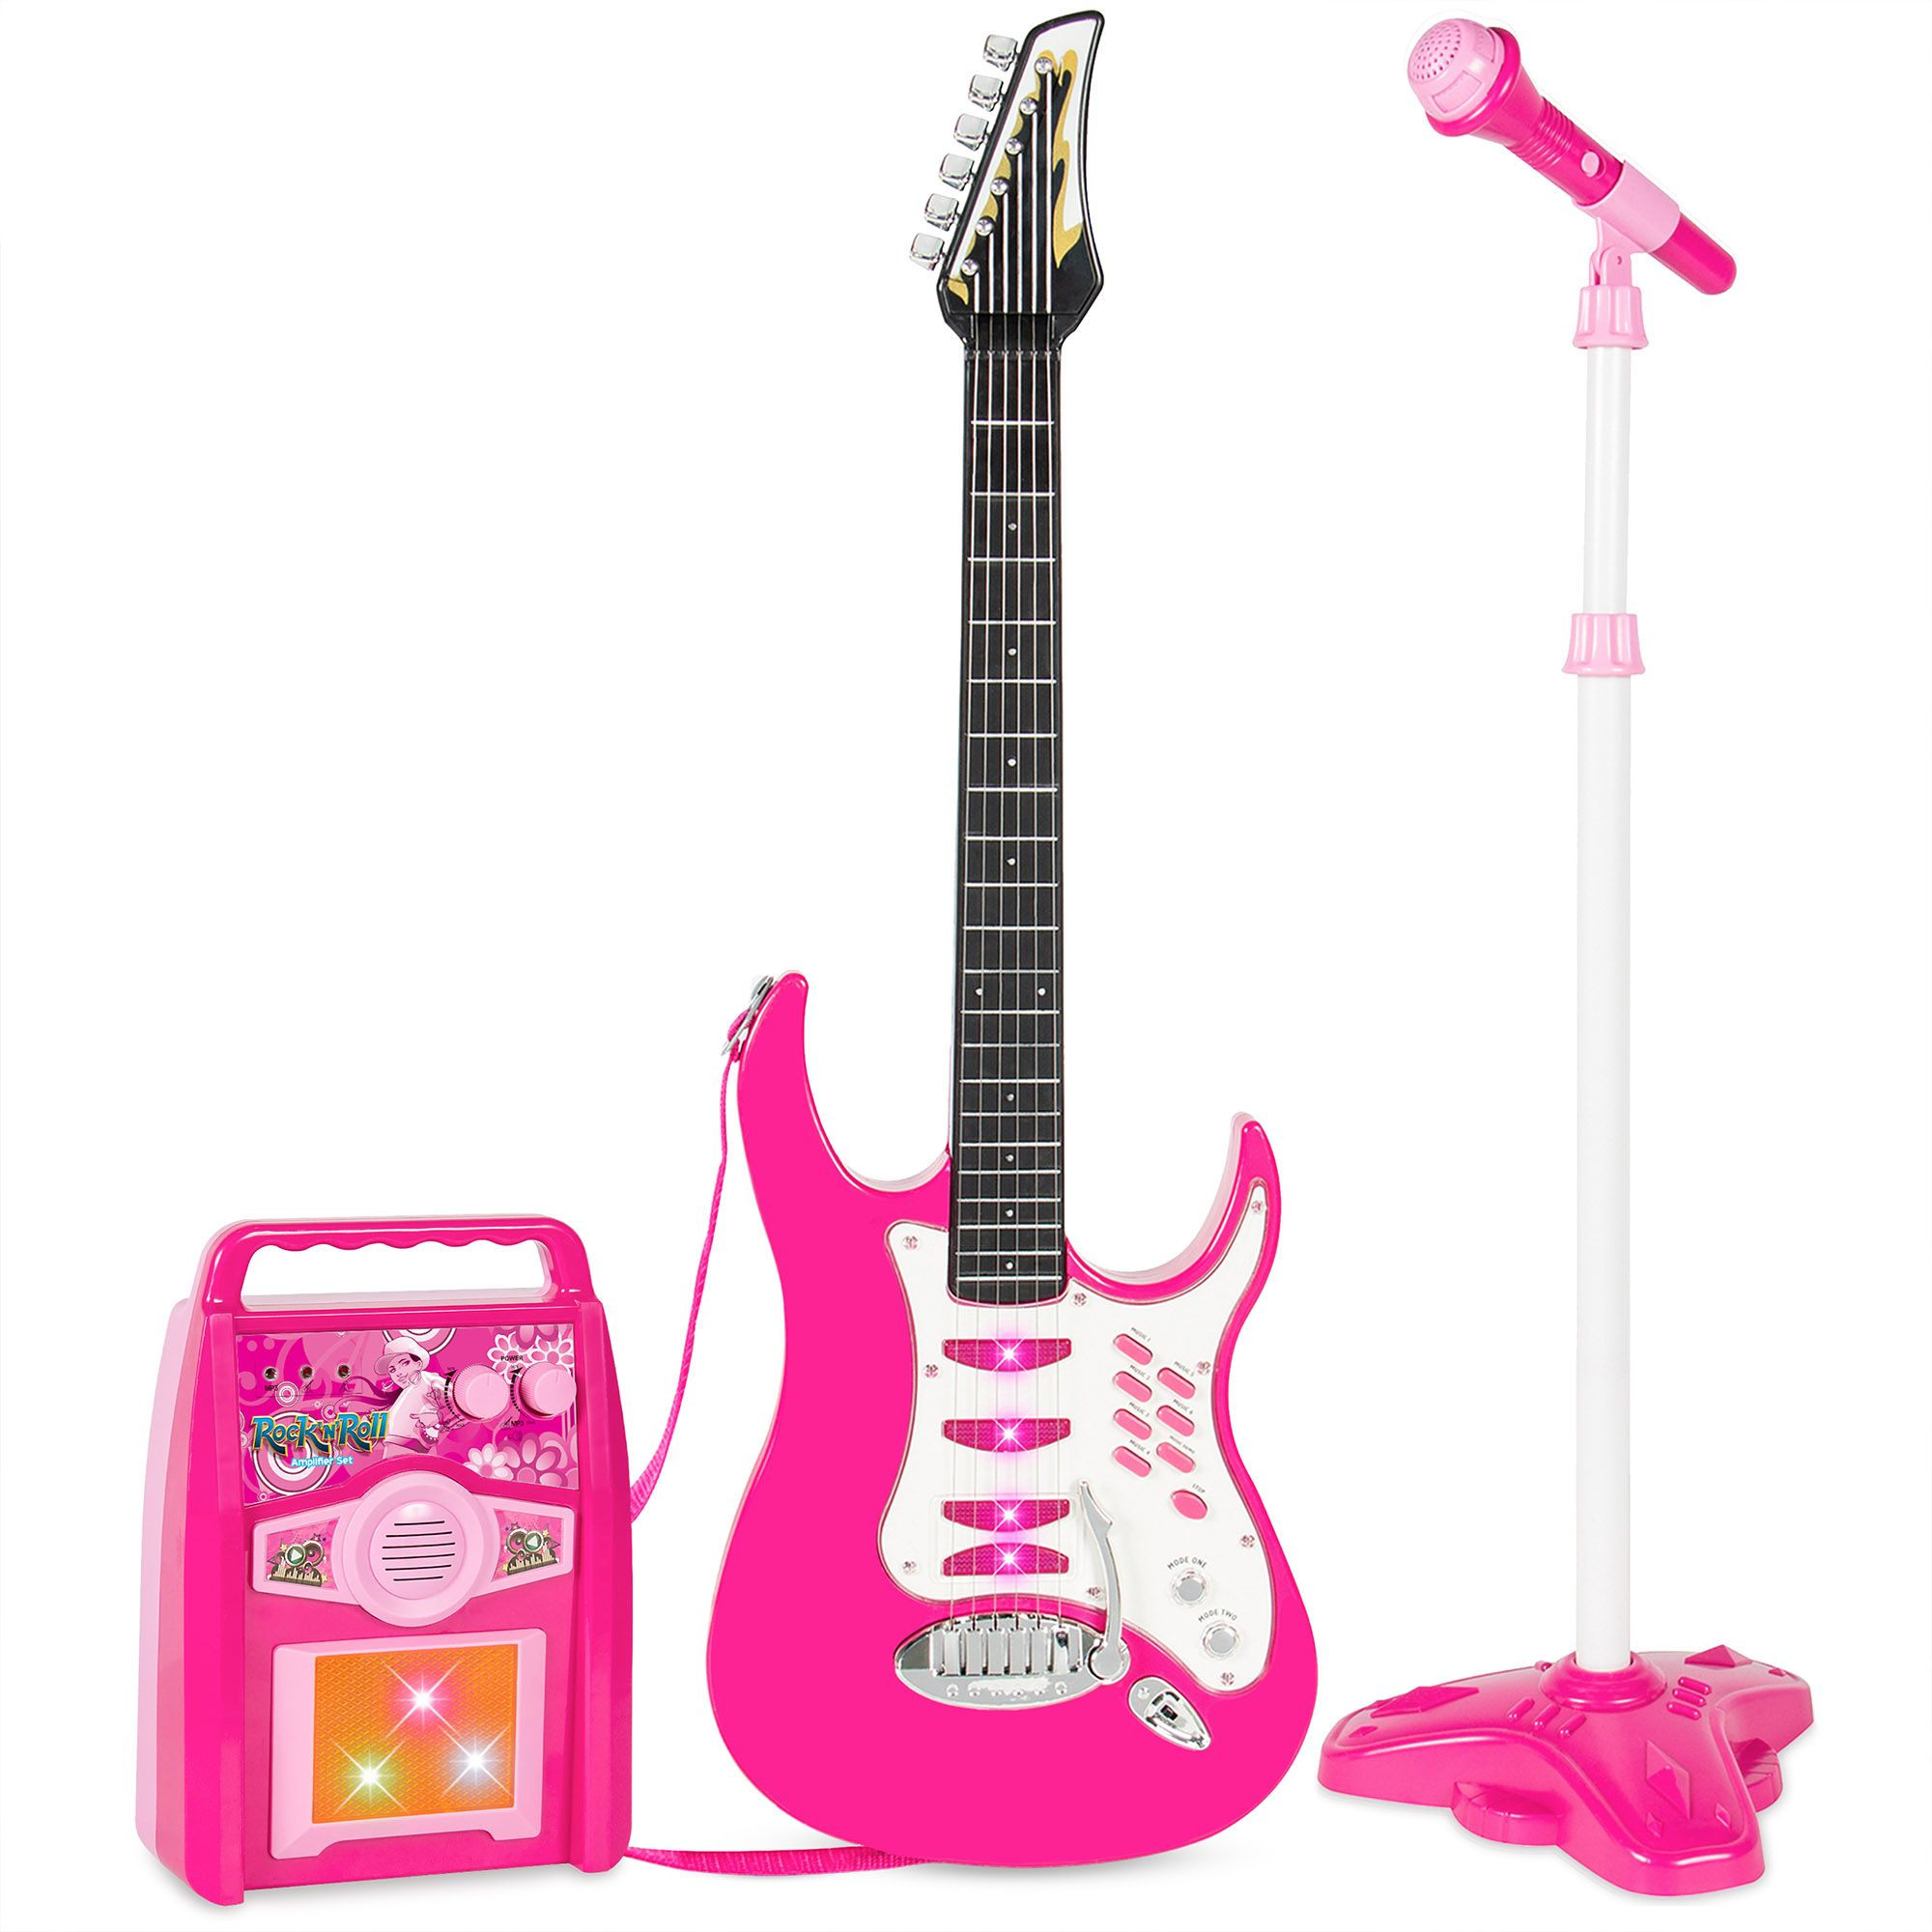 Best choice products kids electric musical guitar play set